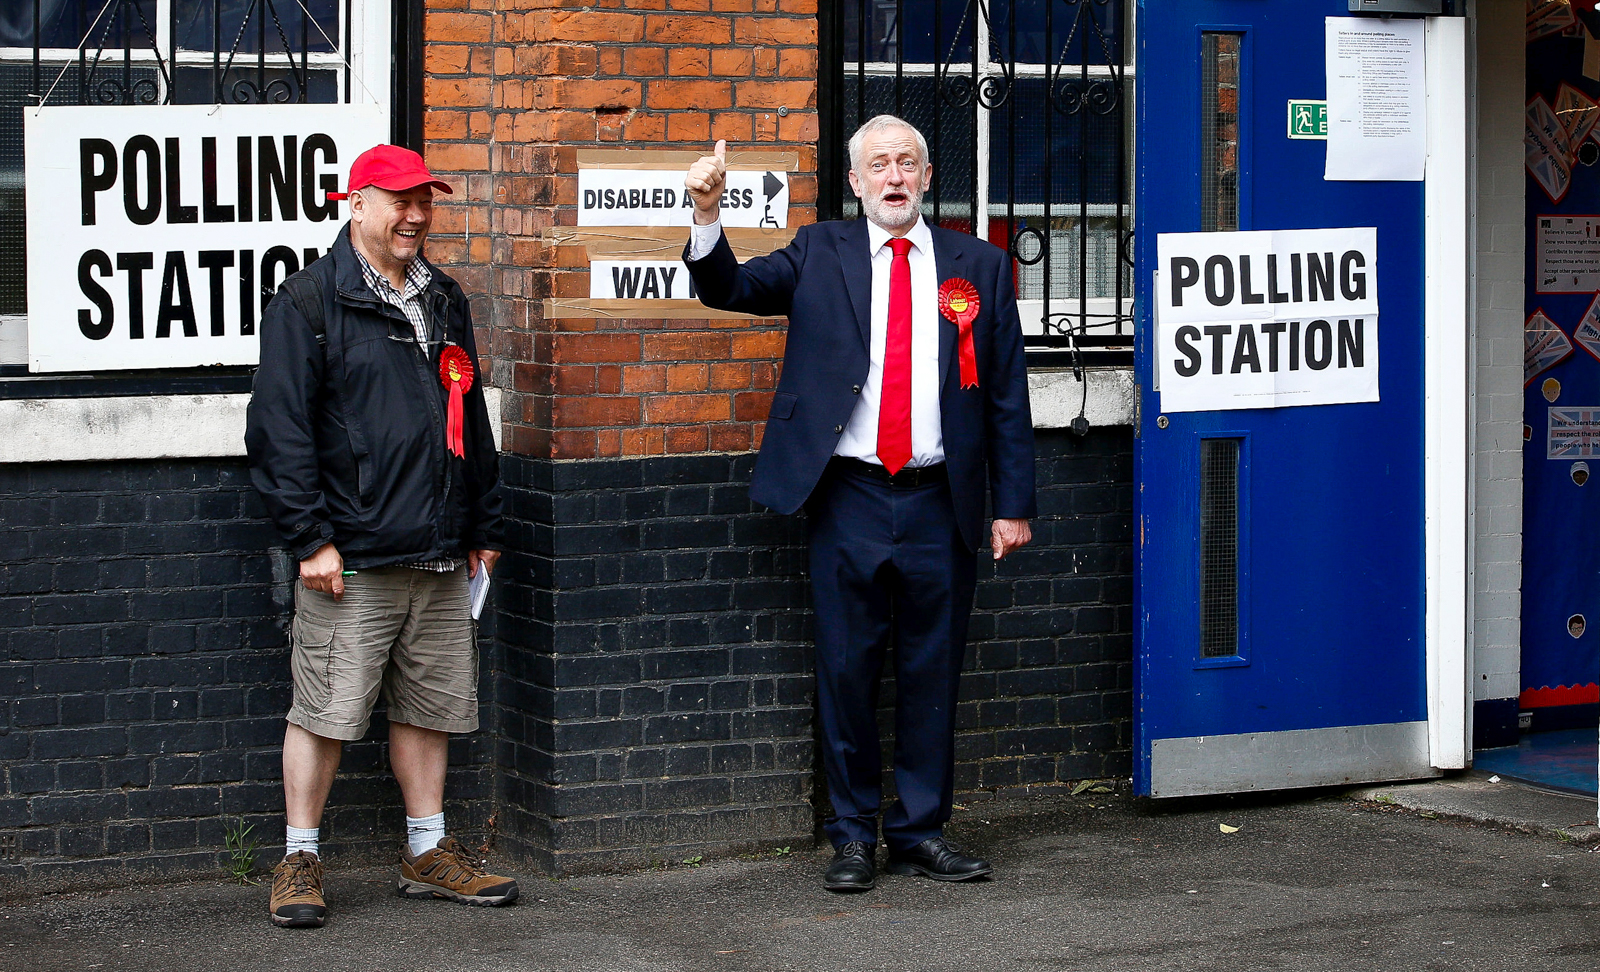 Jeremy Corbyn casts his vote at Pakeman School, Holloway, London, June 8 2017